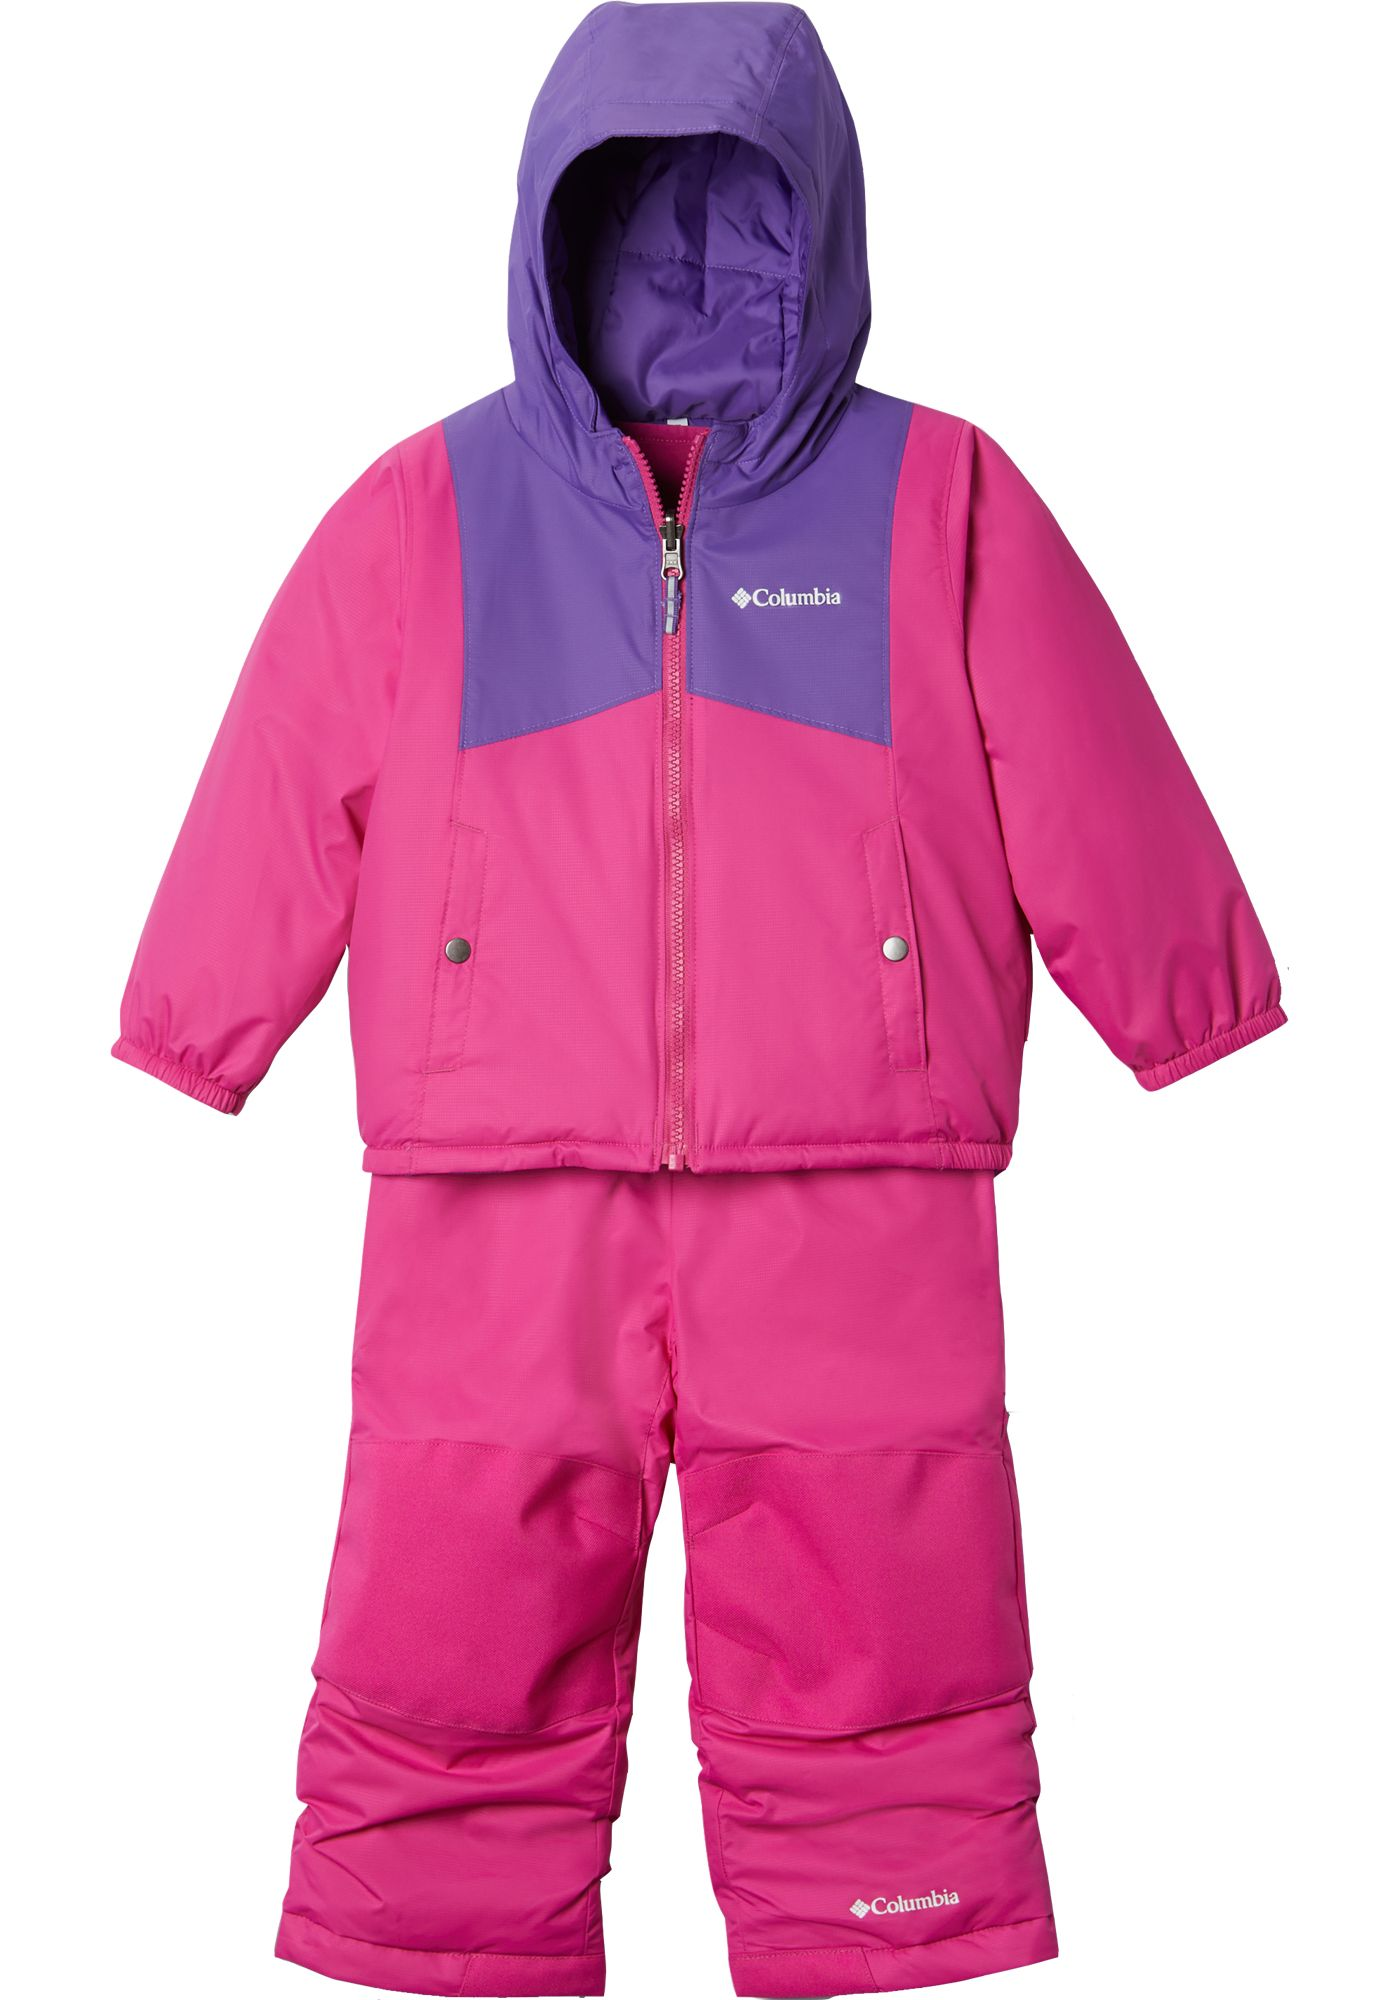 Columbia Infant Reversible Double Flake Jacket and Bib Set